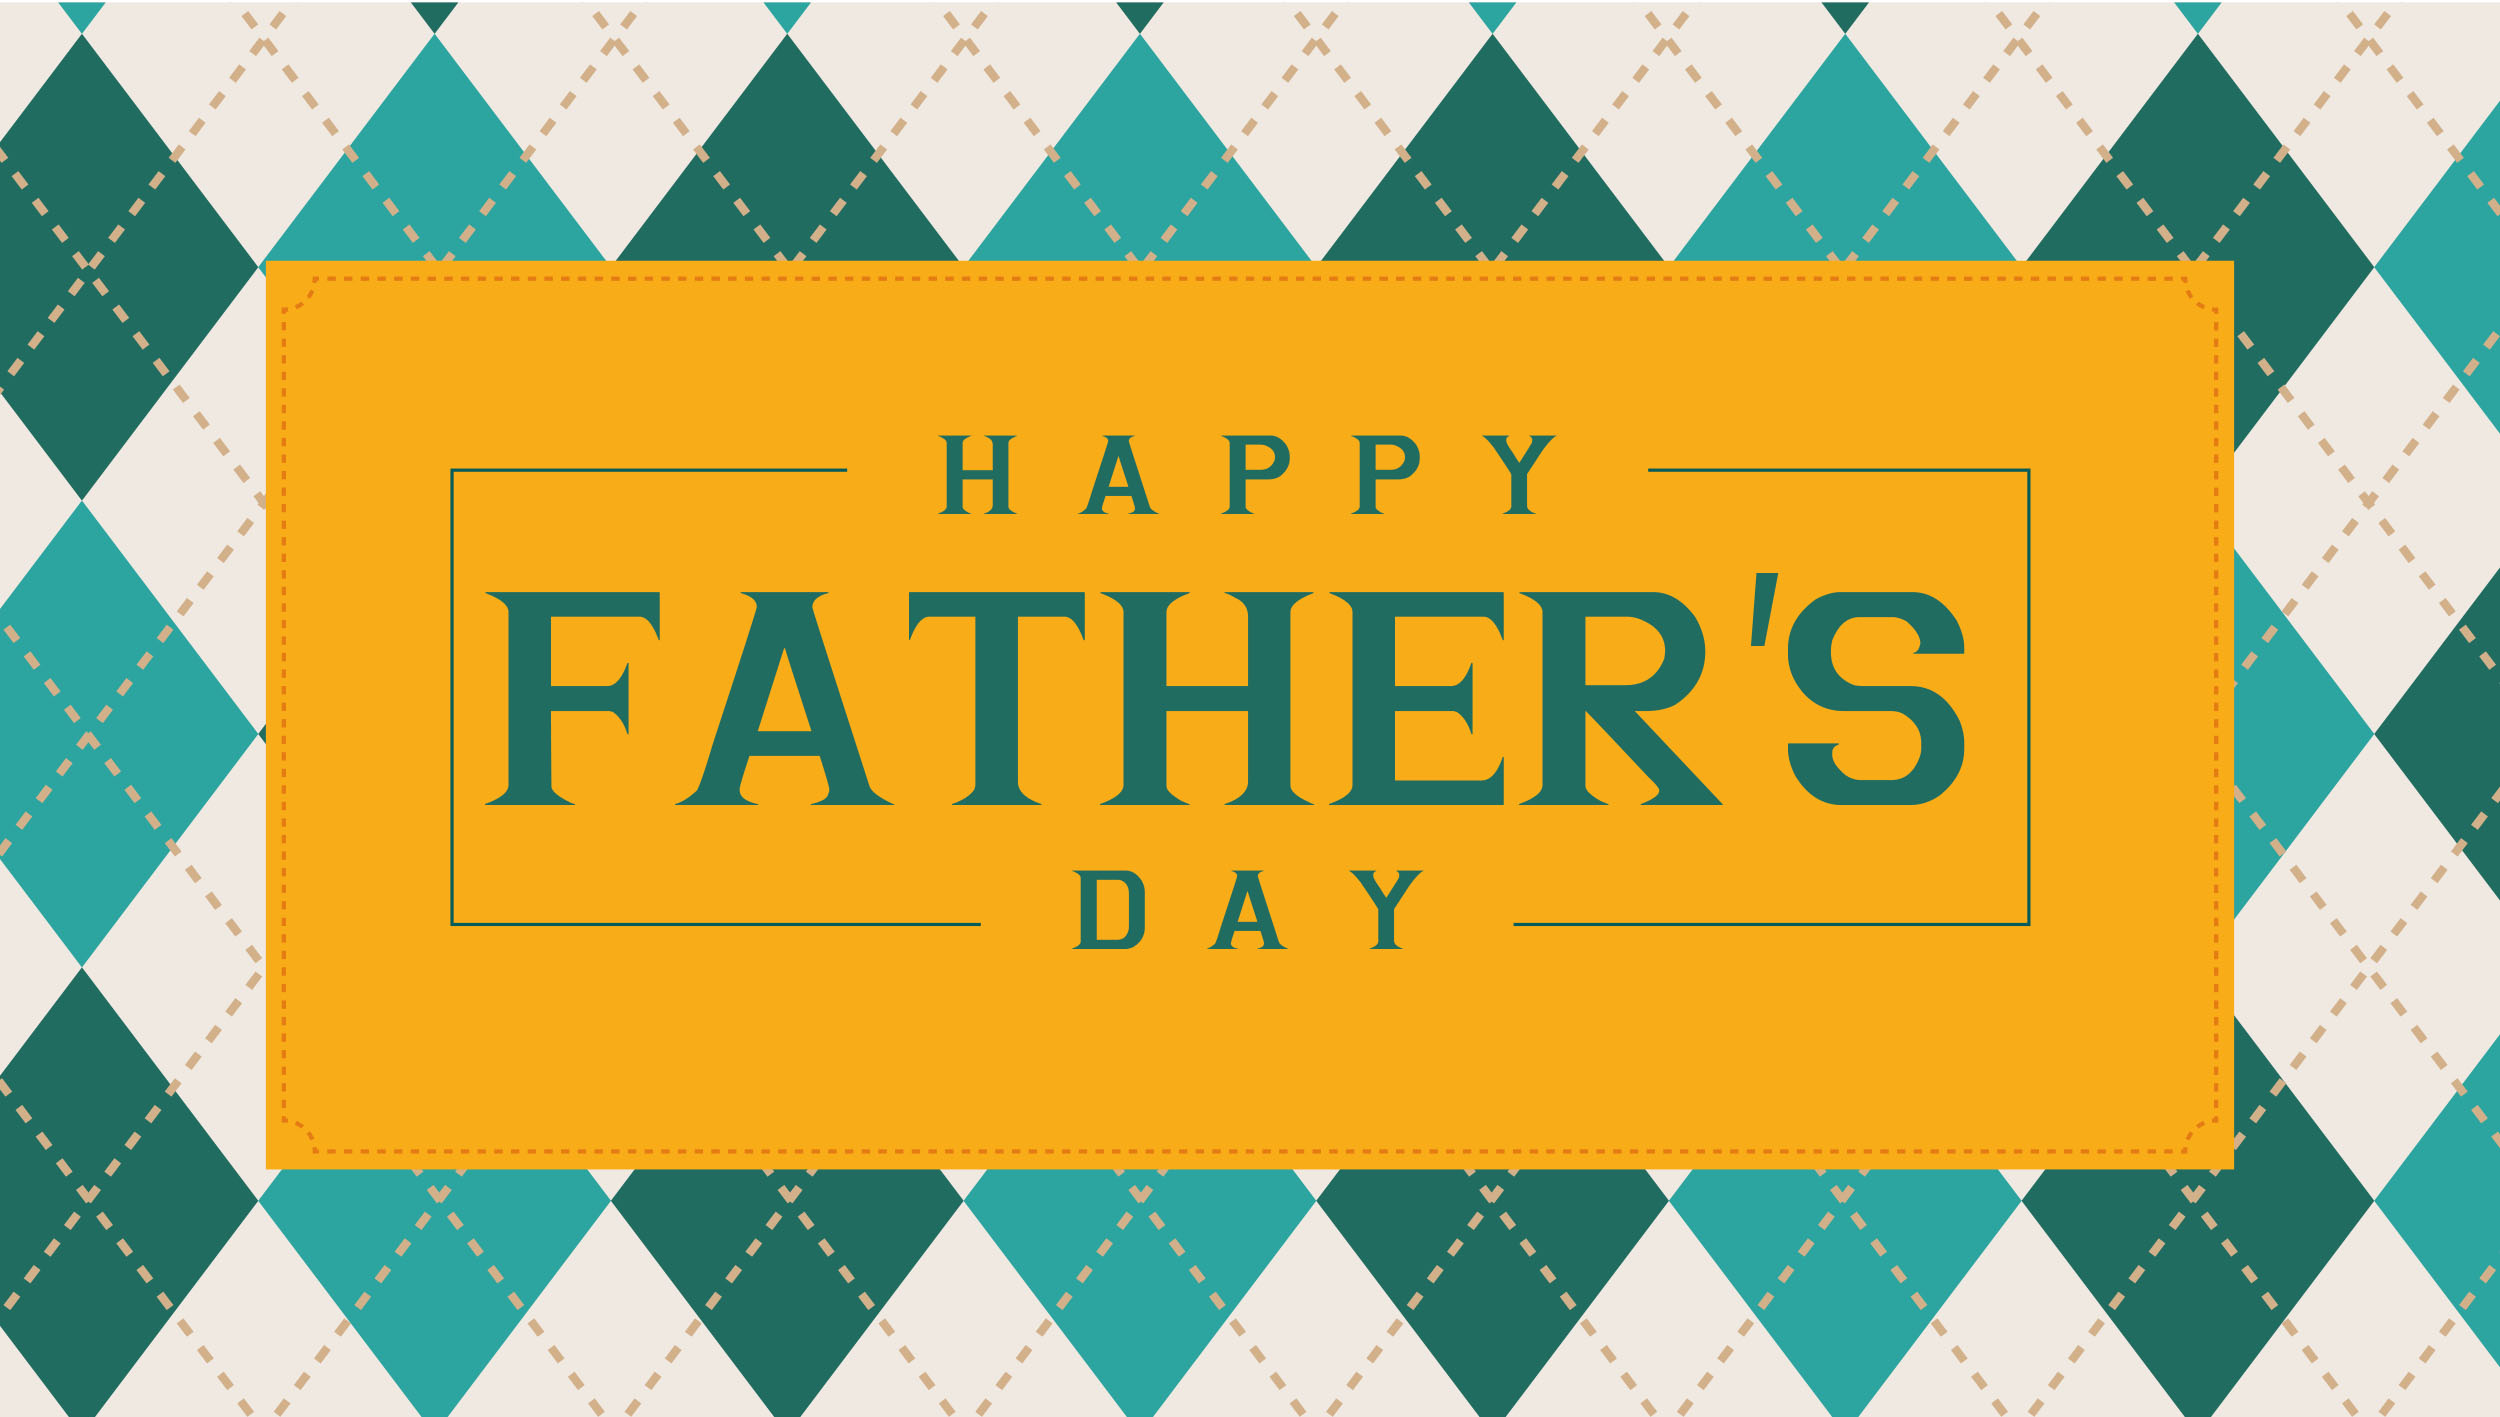 Make this Father's Day special with the help of e-cards